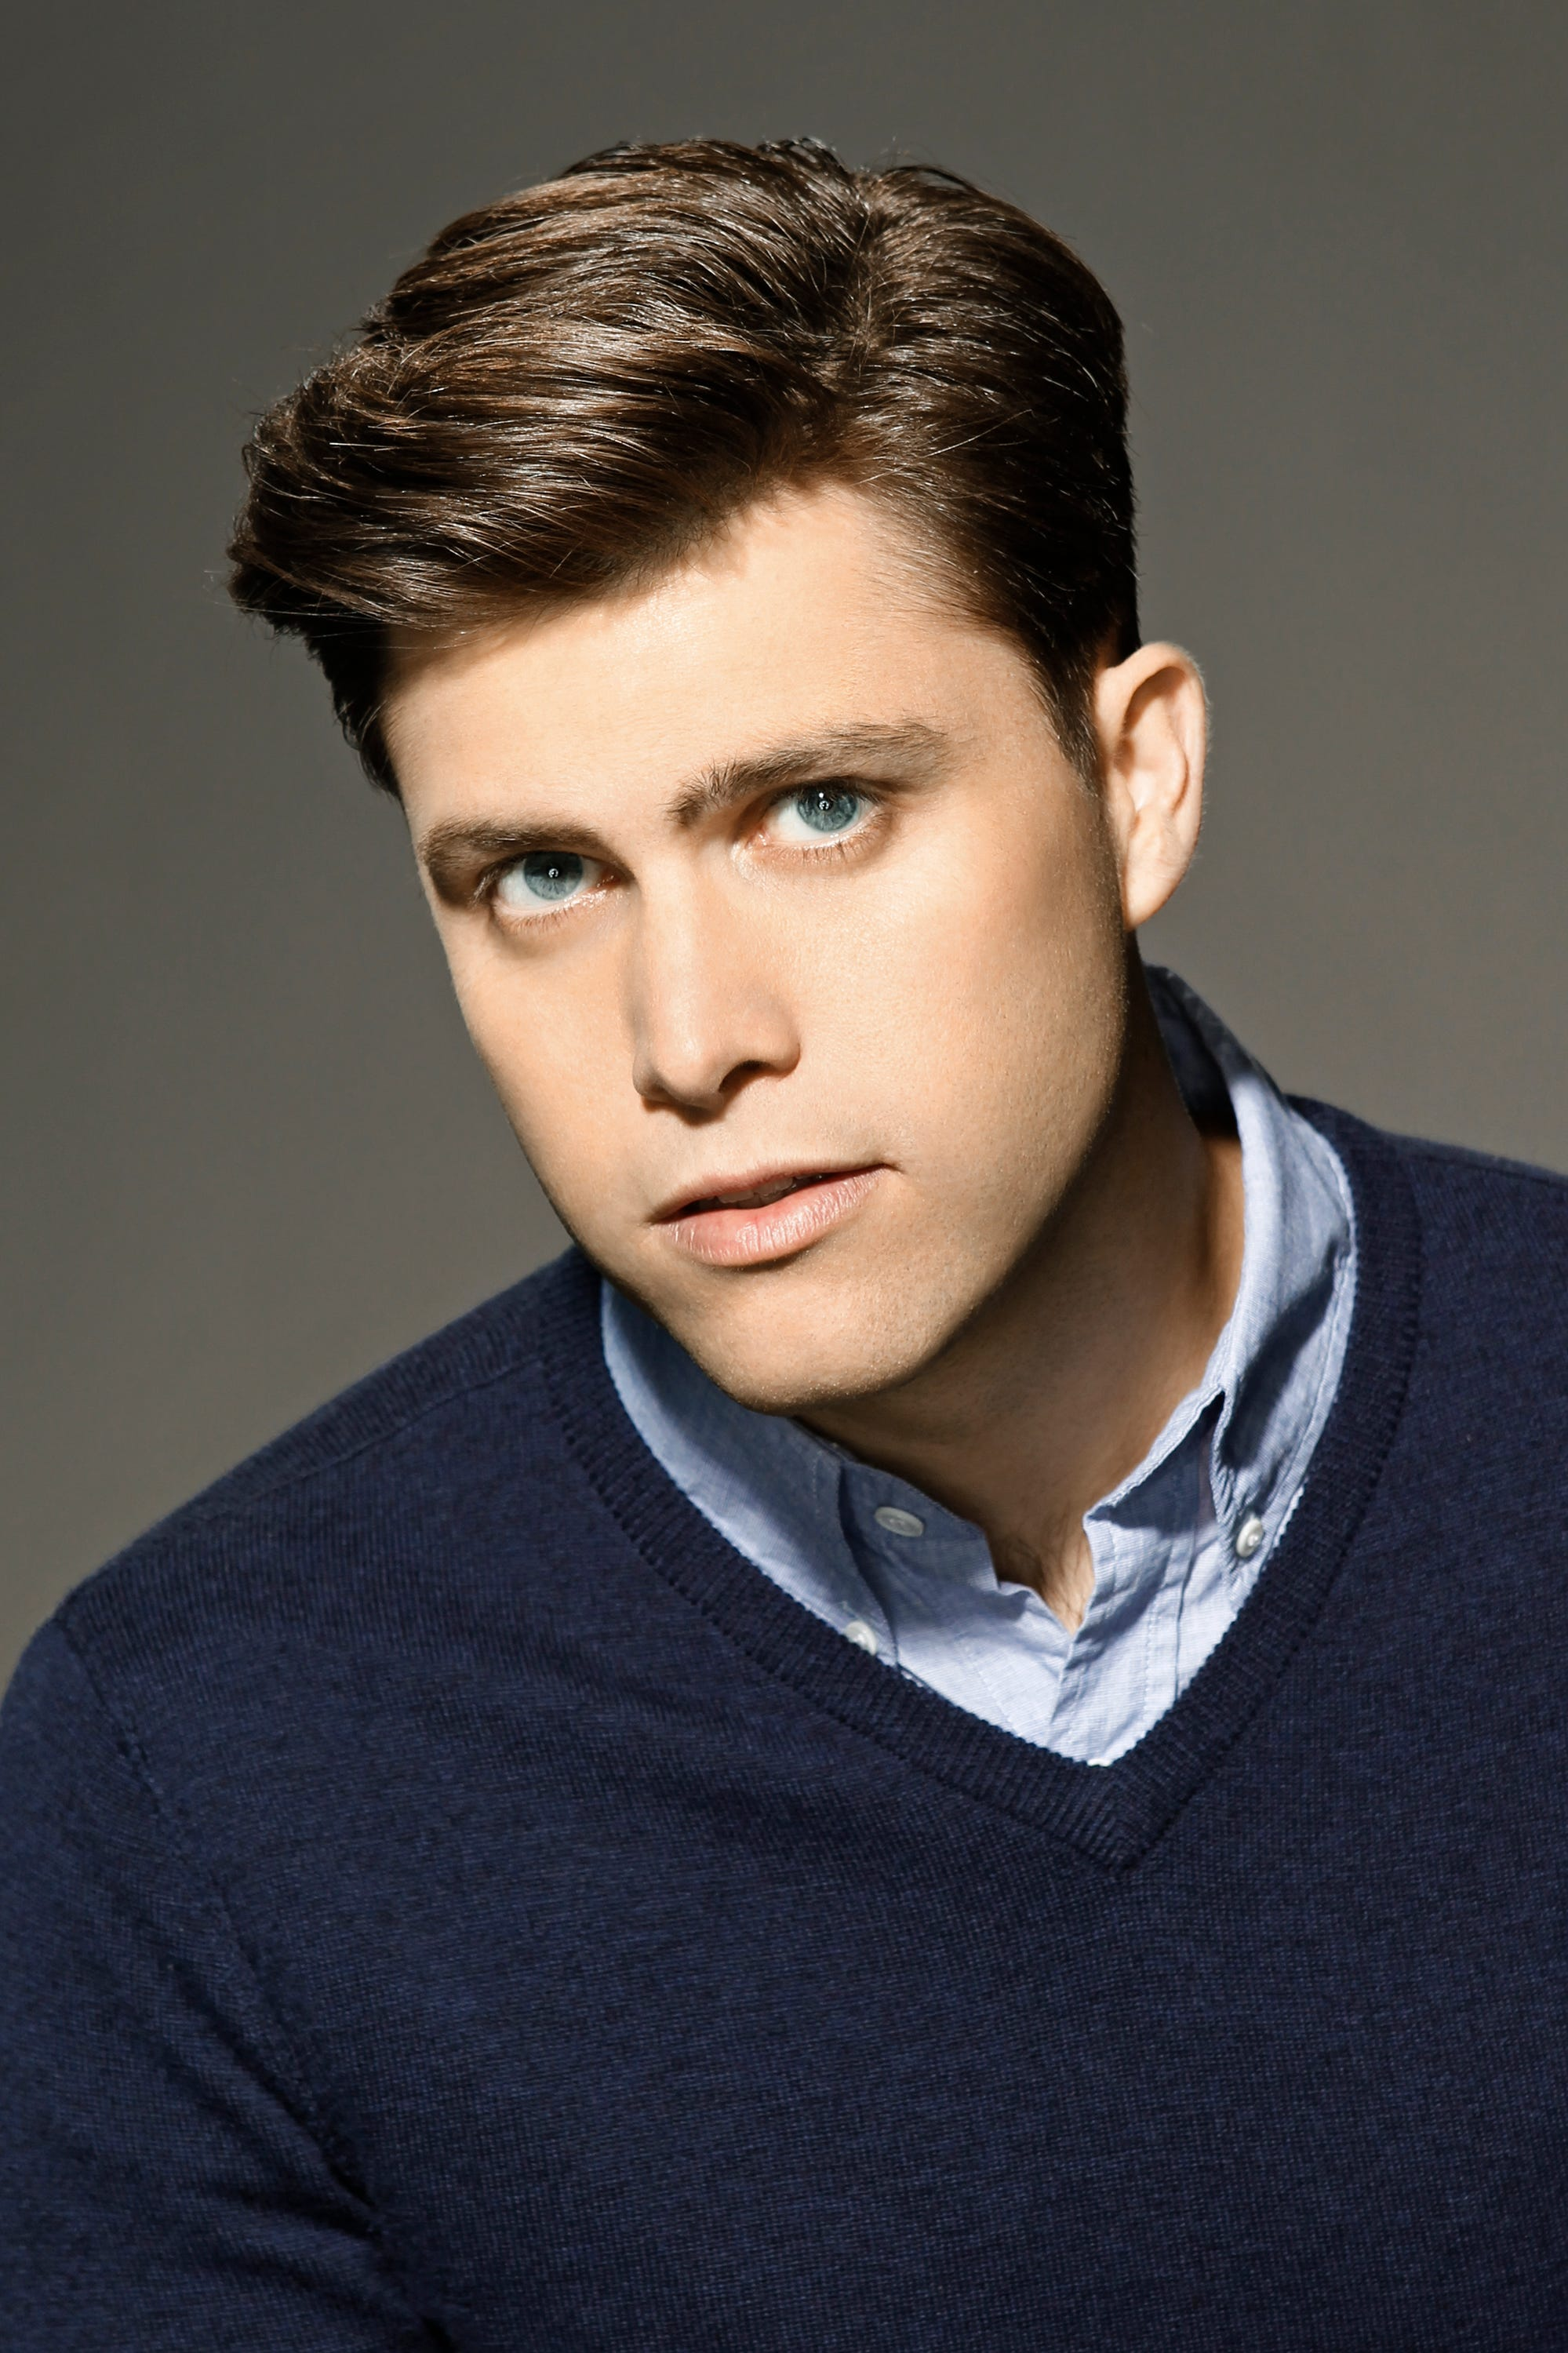 Snl Star Colin Jost Performs This Saturday In Pontiac